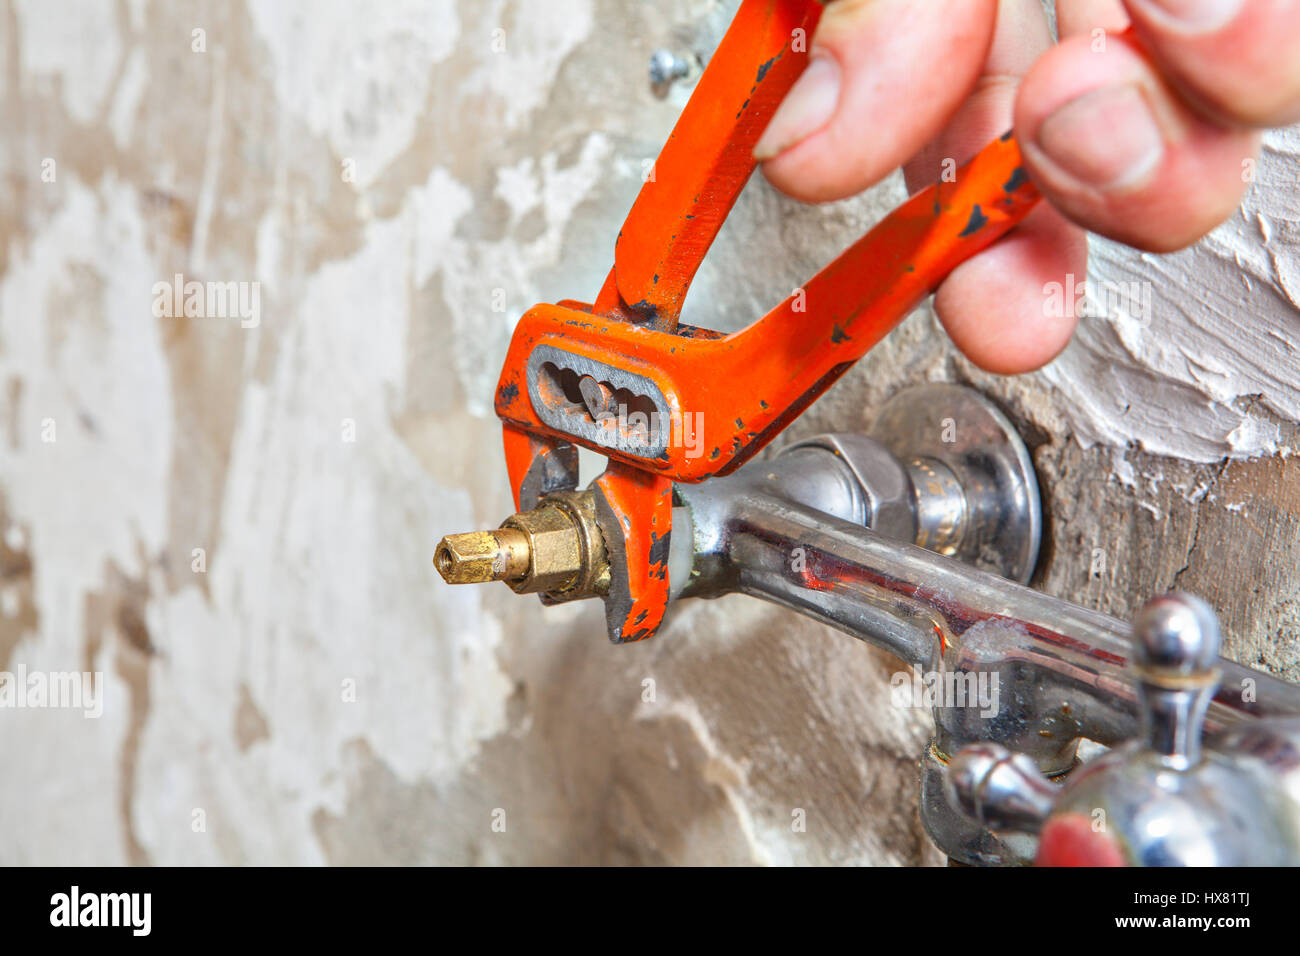 Plumber fixing water tap with leaking water users red plumber pliers ...